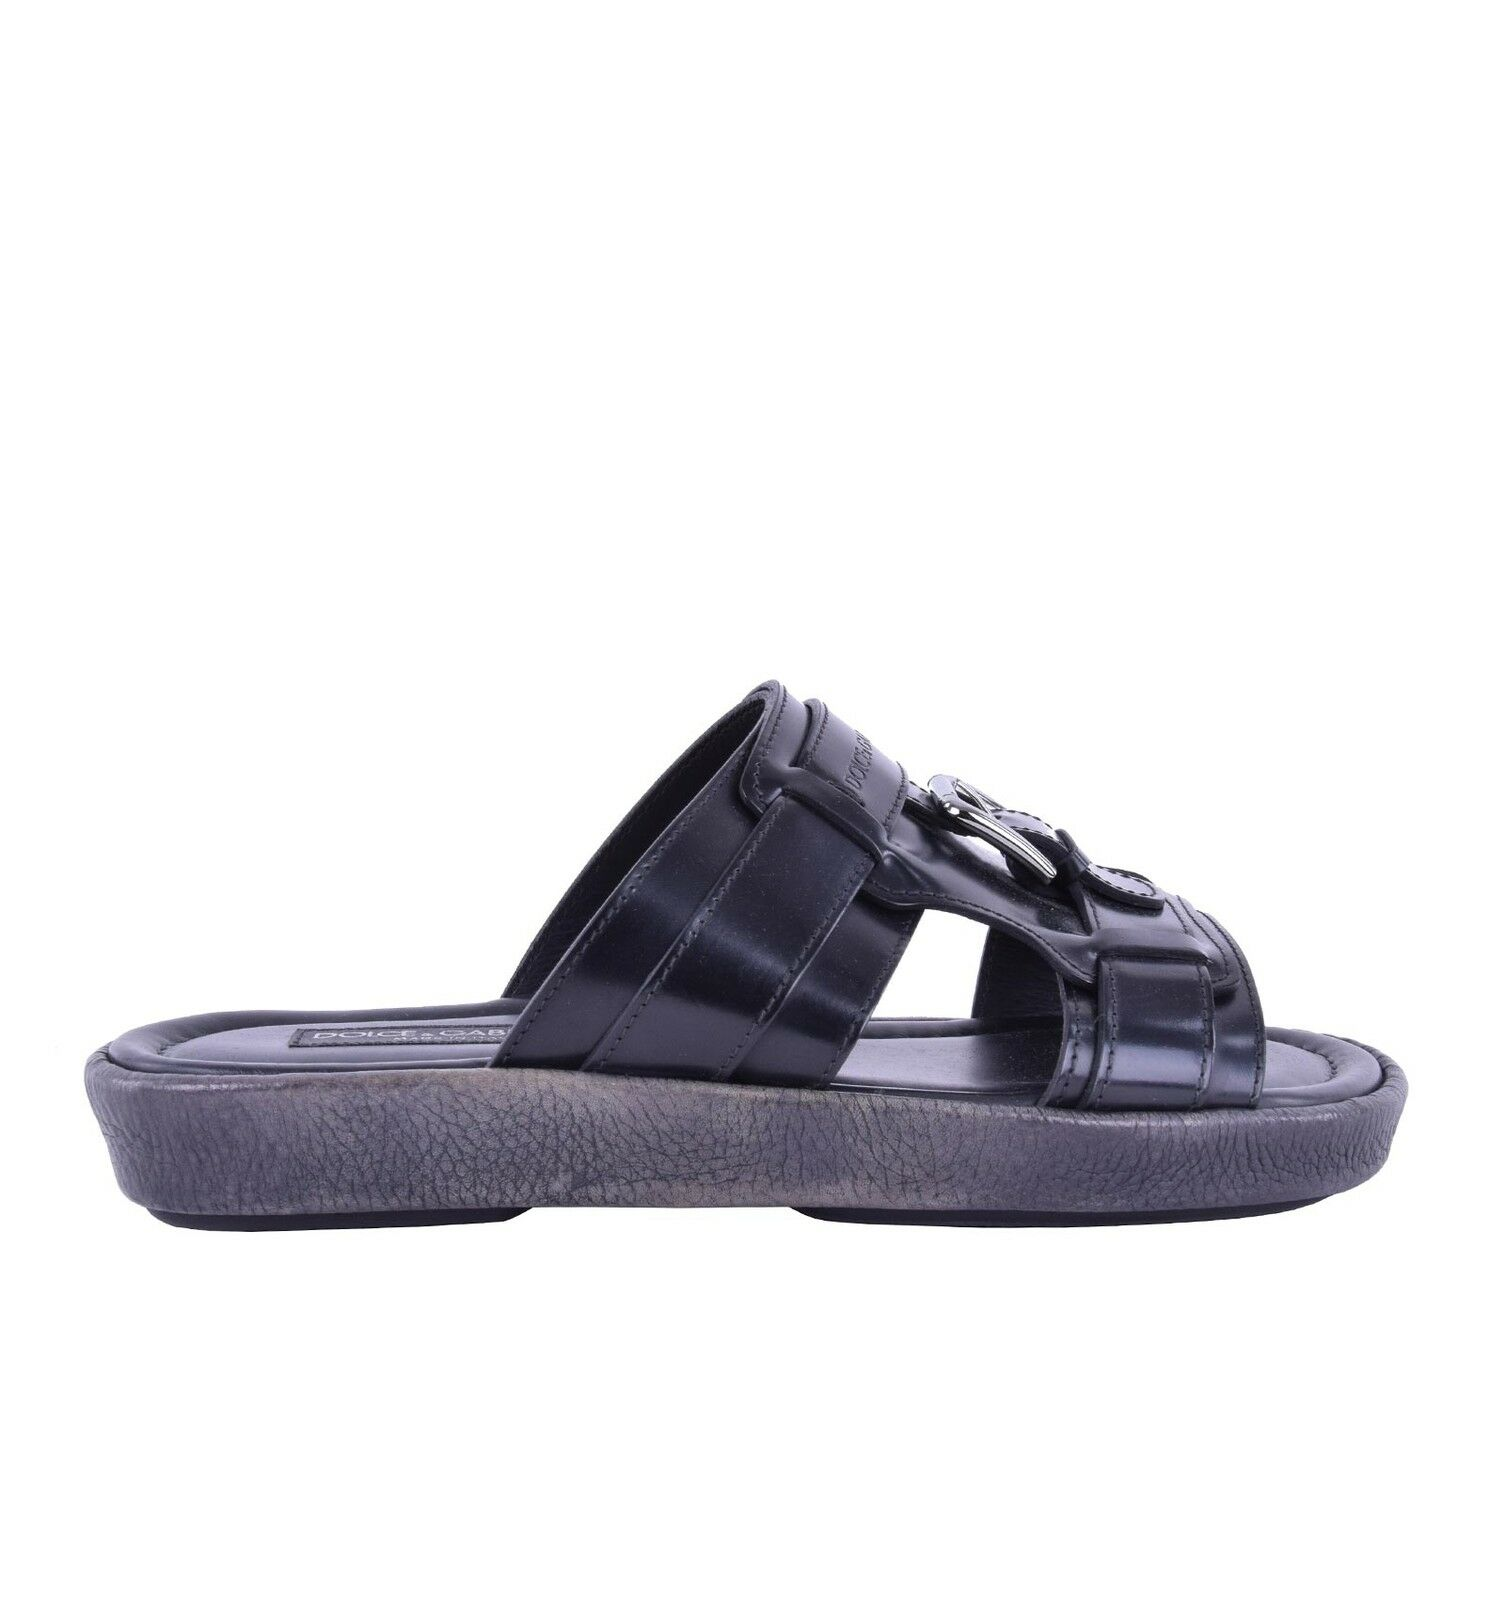 DOLCE & GABBANA Sandals MEDITERRANEO with Logo & Buckle Black Gray Shoes 05222